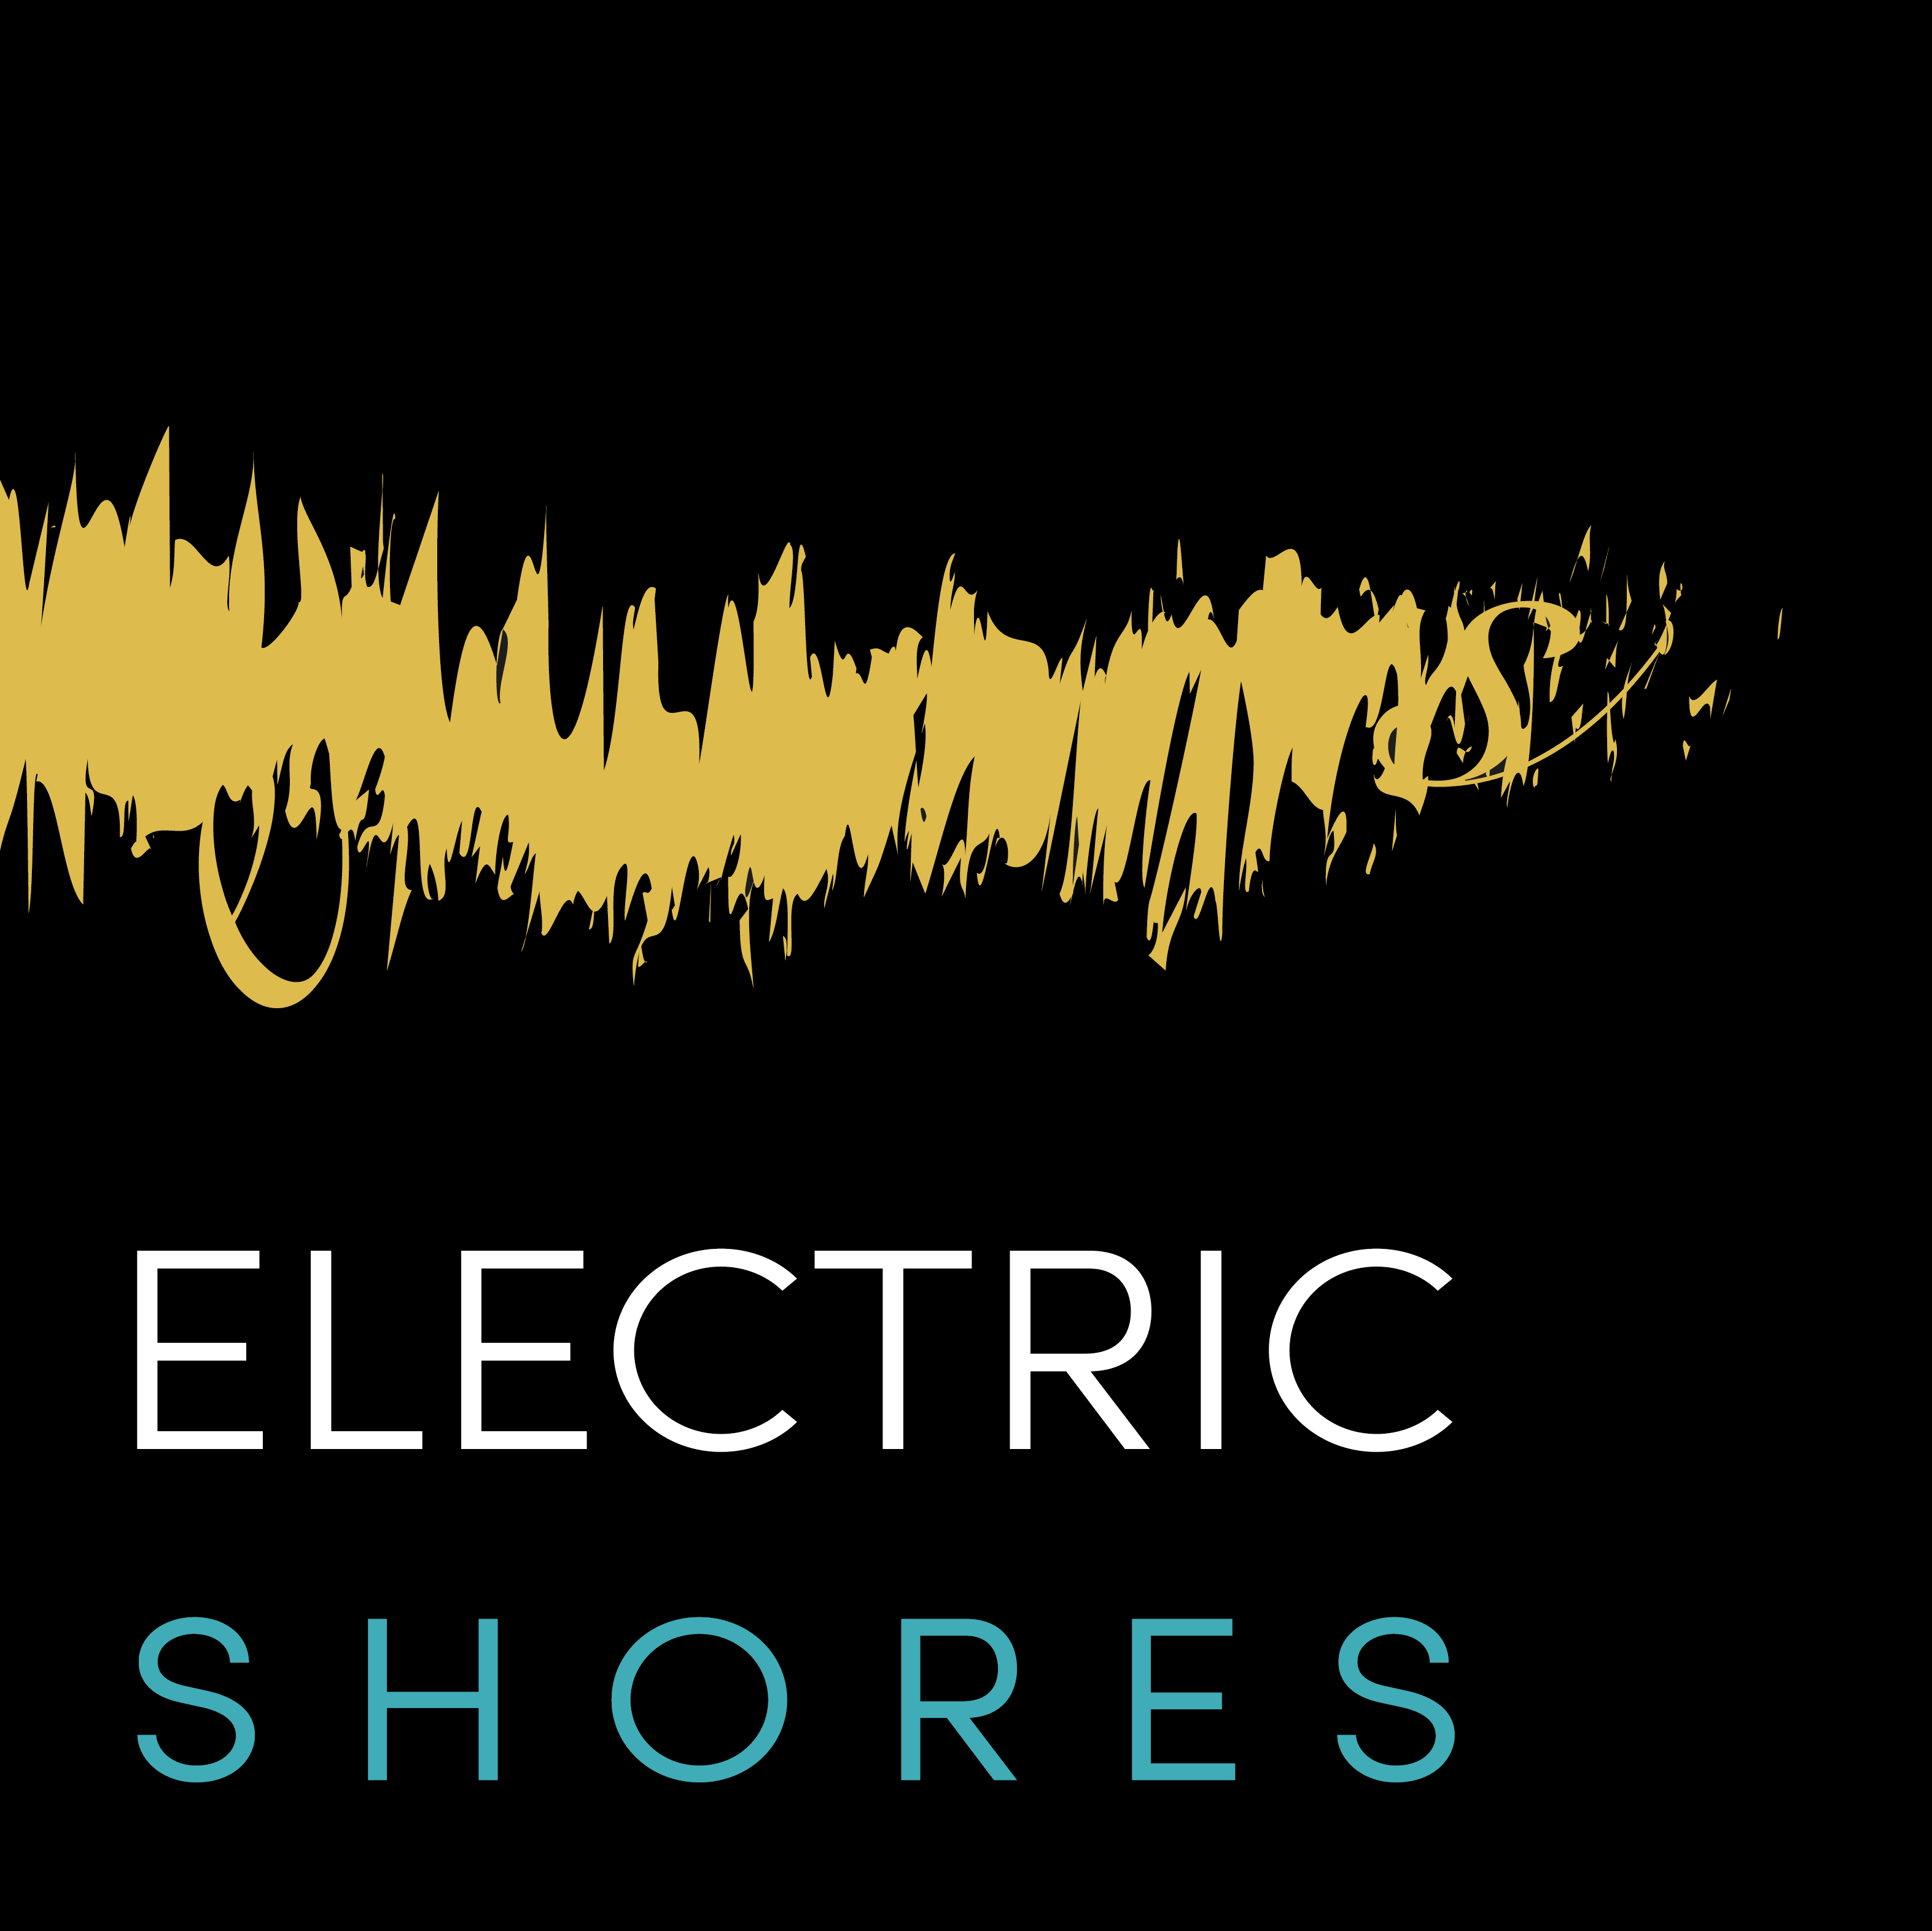 Electric Shores